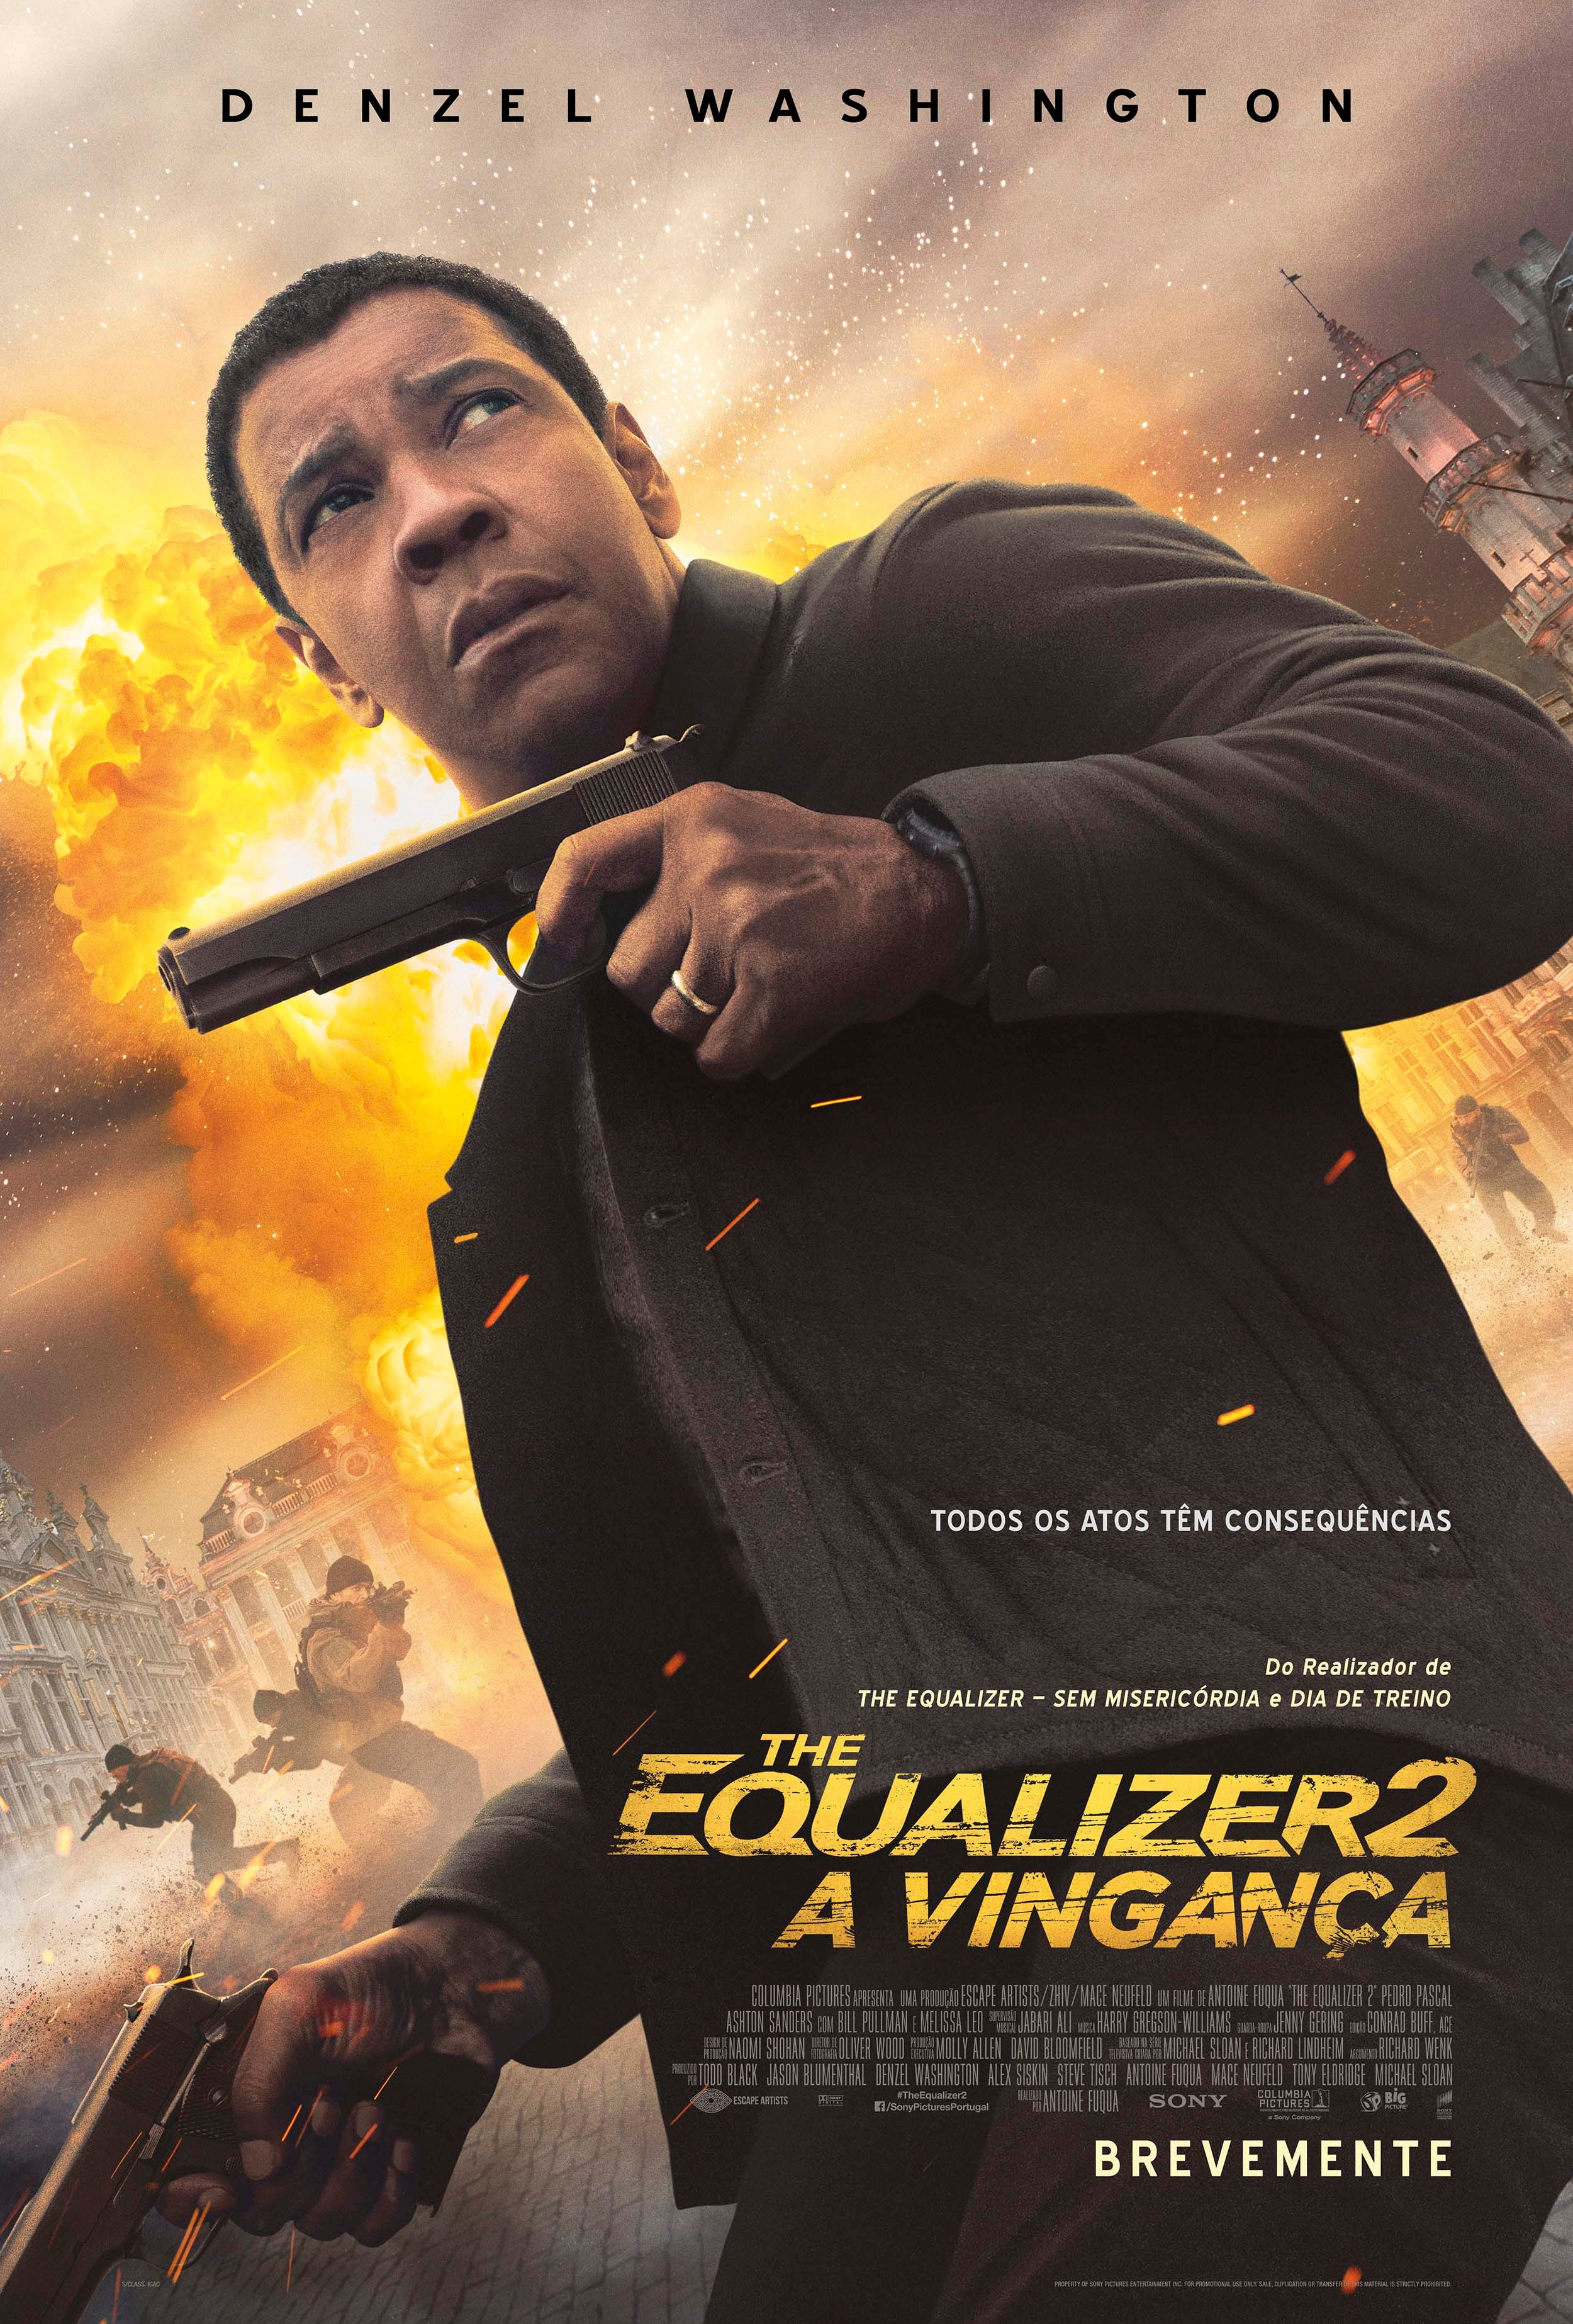 Antestreia: The Equalizer 2 - A Vingança